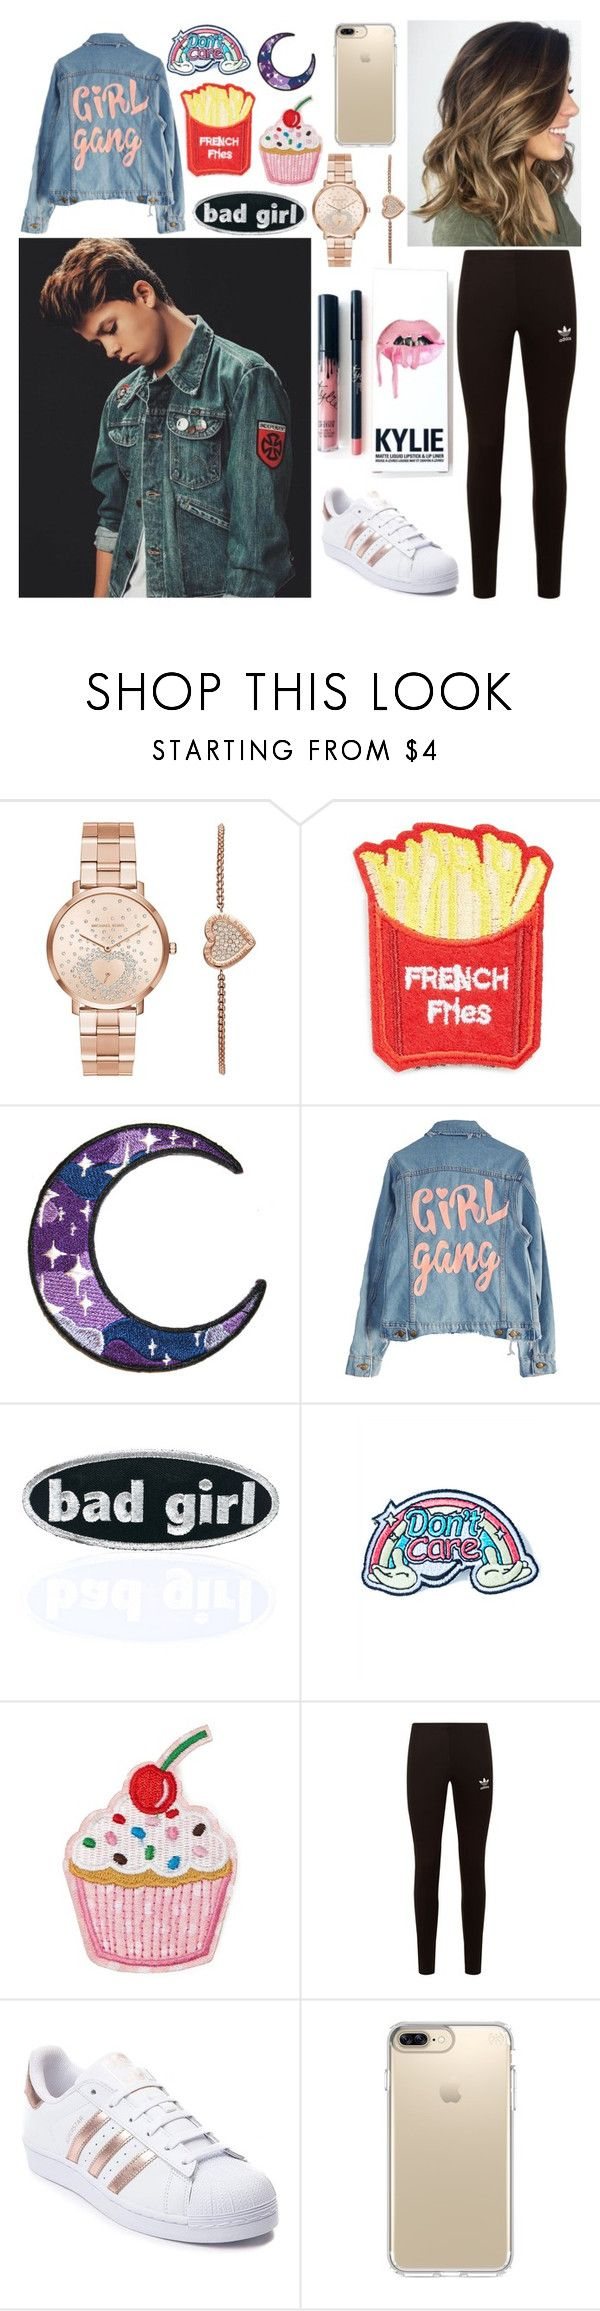 """""""Jacob Sartorius"""" by romyuitweert ❤ liked on Polyvore featuring Michael Kors, Kylie Cosmetics, Cara, High Heels Suicide, C&D Visionary, Eye Candy, Forever 21, adidas Originals, adidas and Speck"""